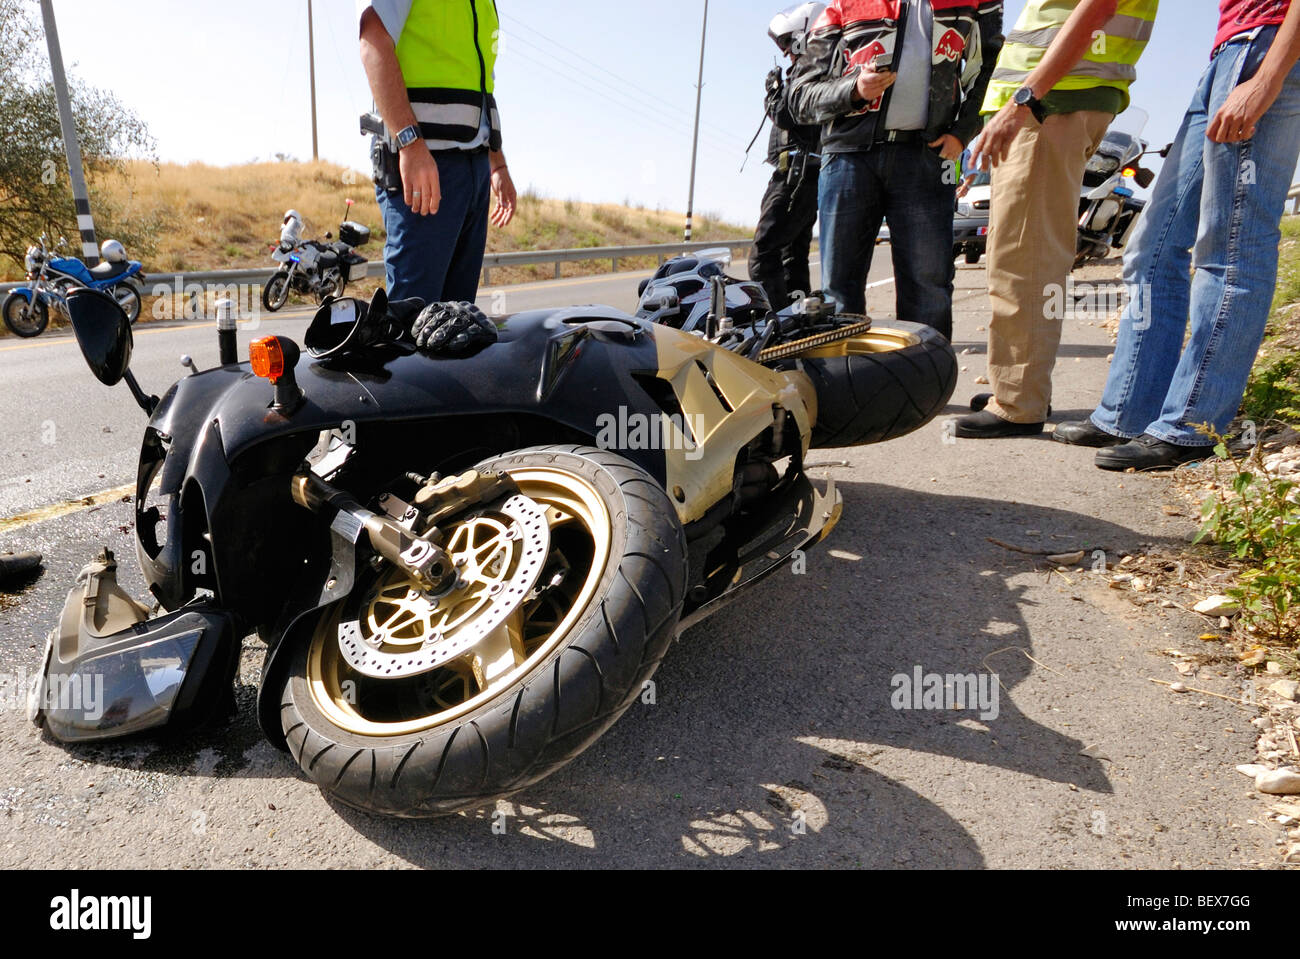 Israel, A motorbike lies on the road after a traffic collision injured person (not in view) is treated by medics - Stock Image